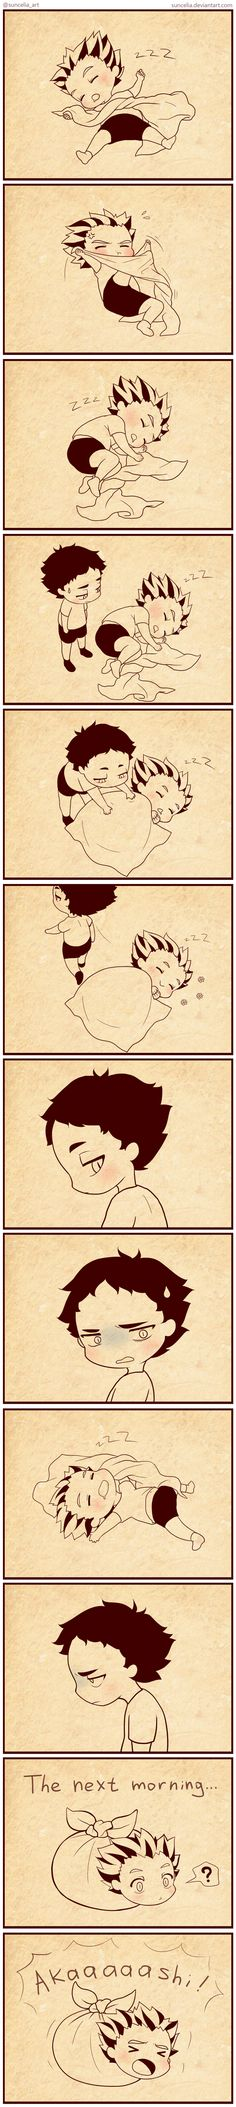 Haikyuu!! How do owls sleep by Suncelia on DeviantArt<<<that is seriously the cutest thing I have ever seen.